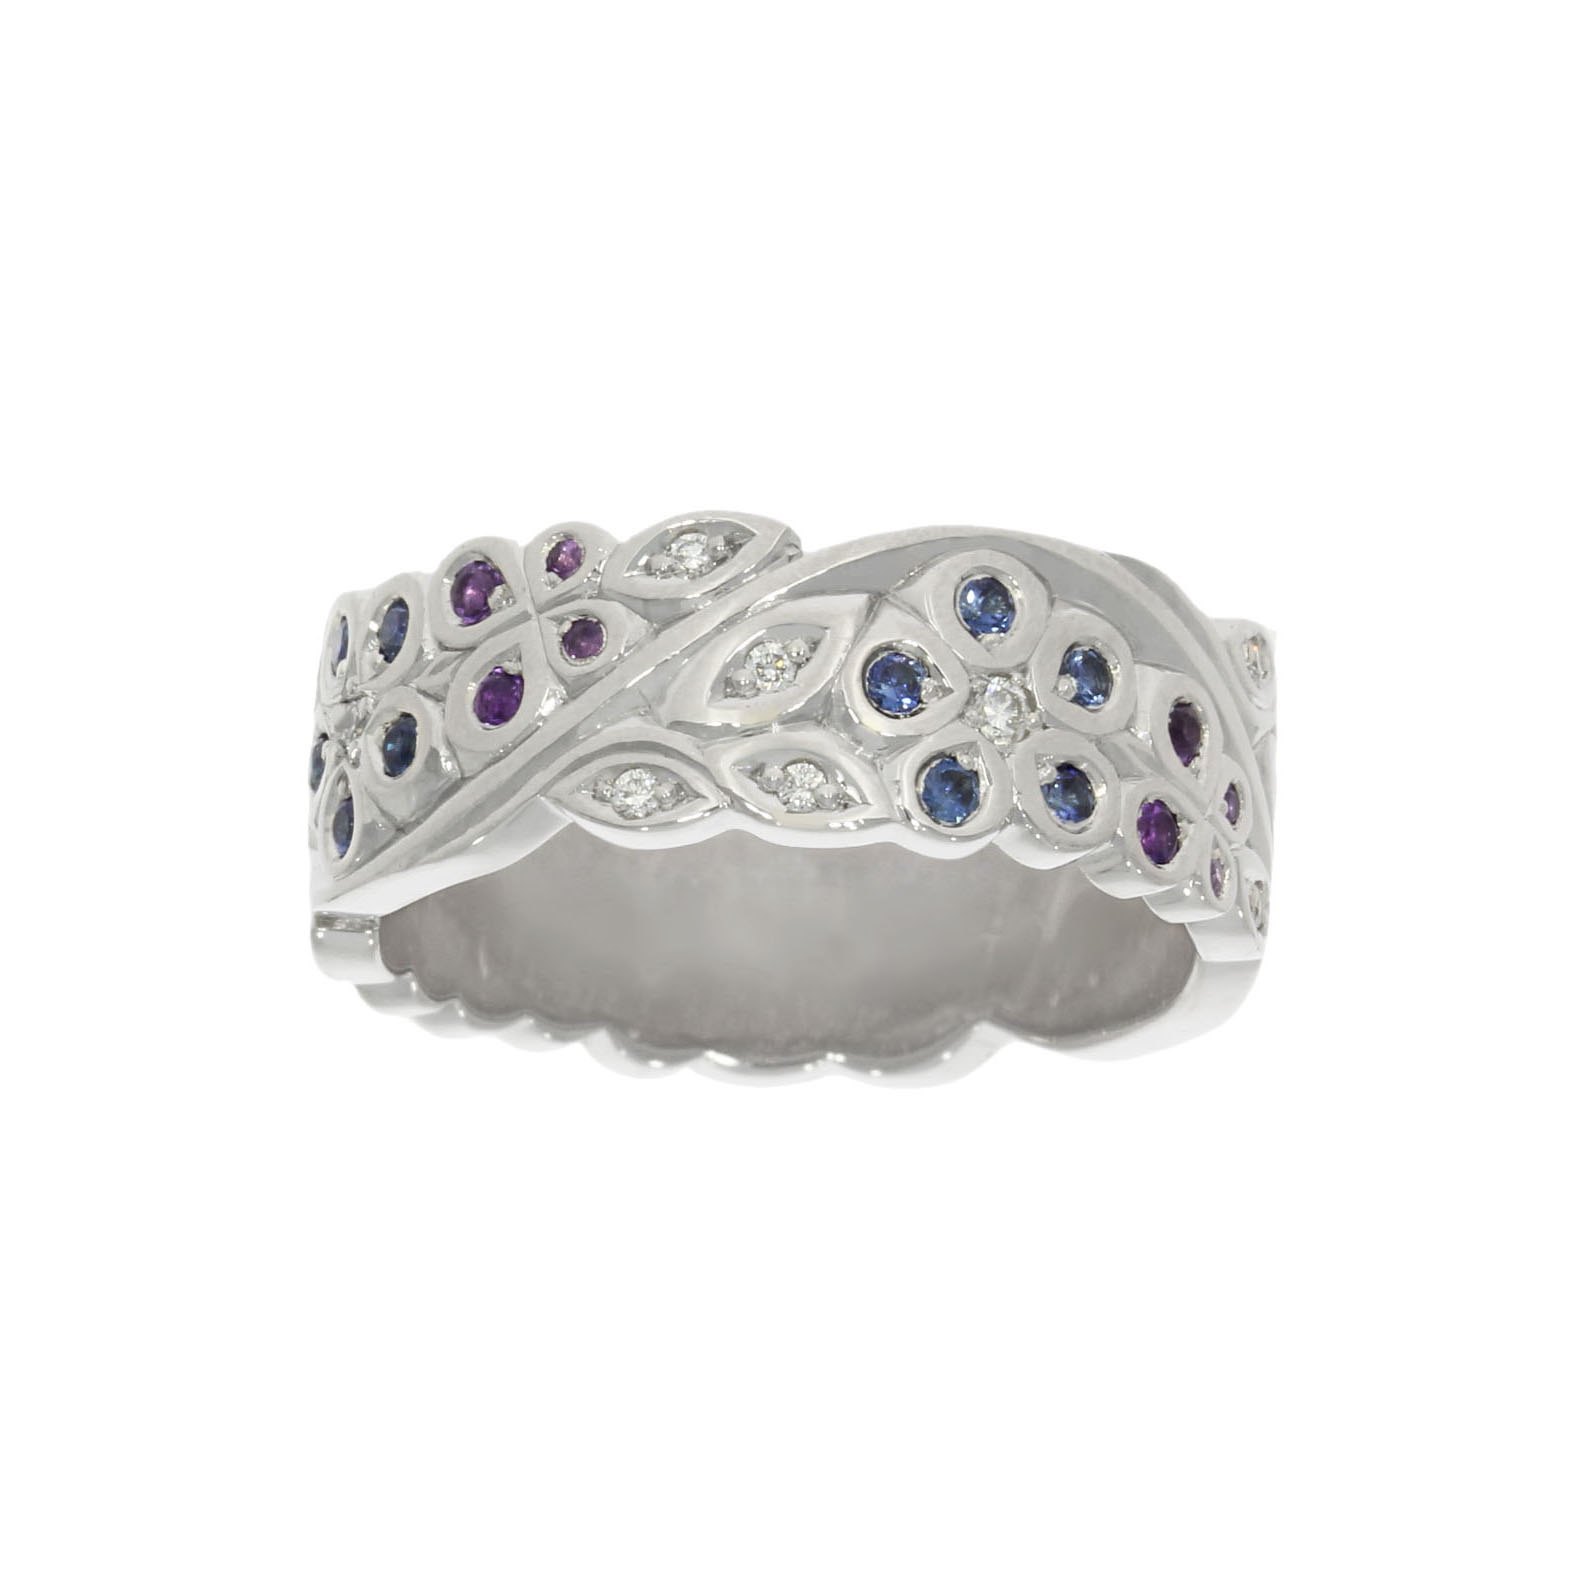 deeply engraved multi coloured sapphire floral and leaf groom's ring